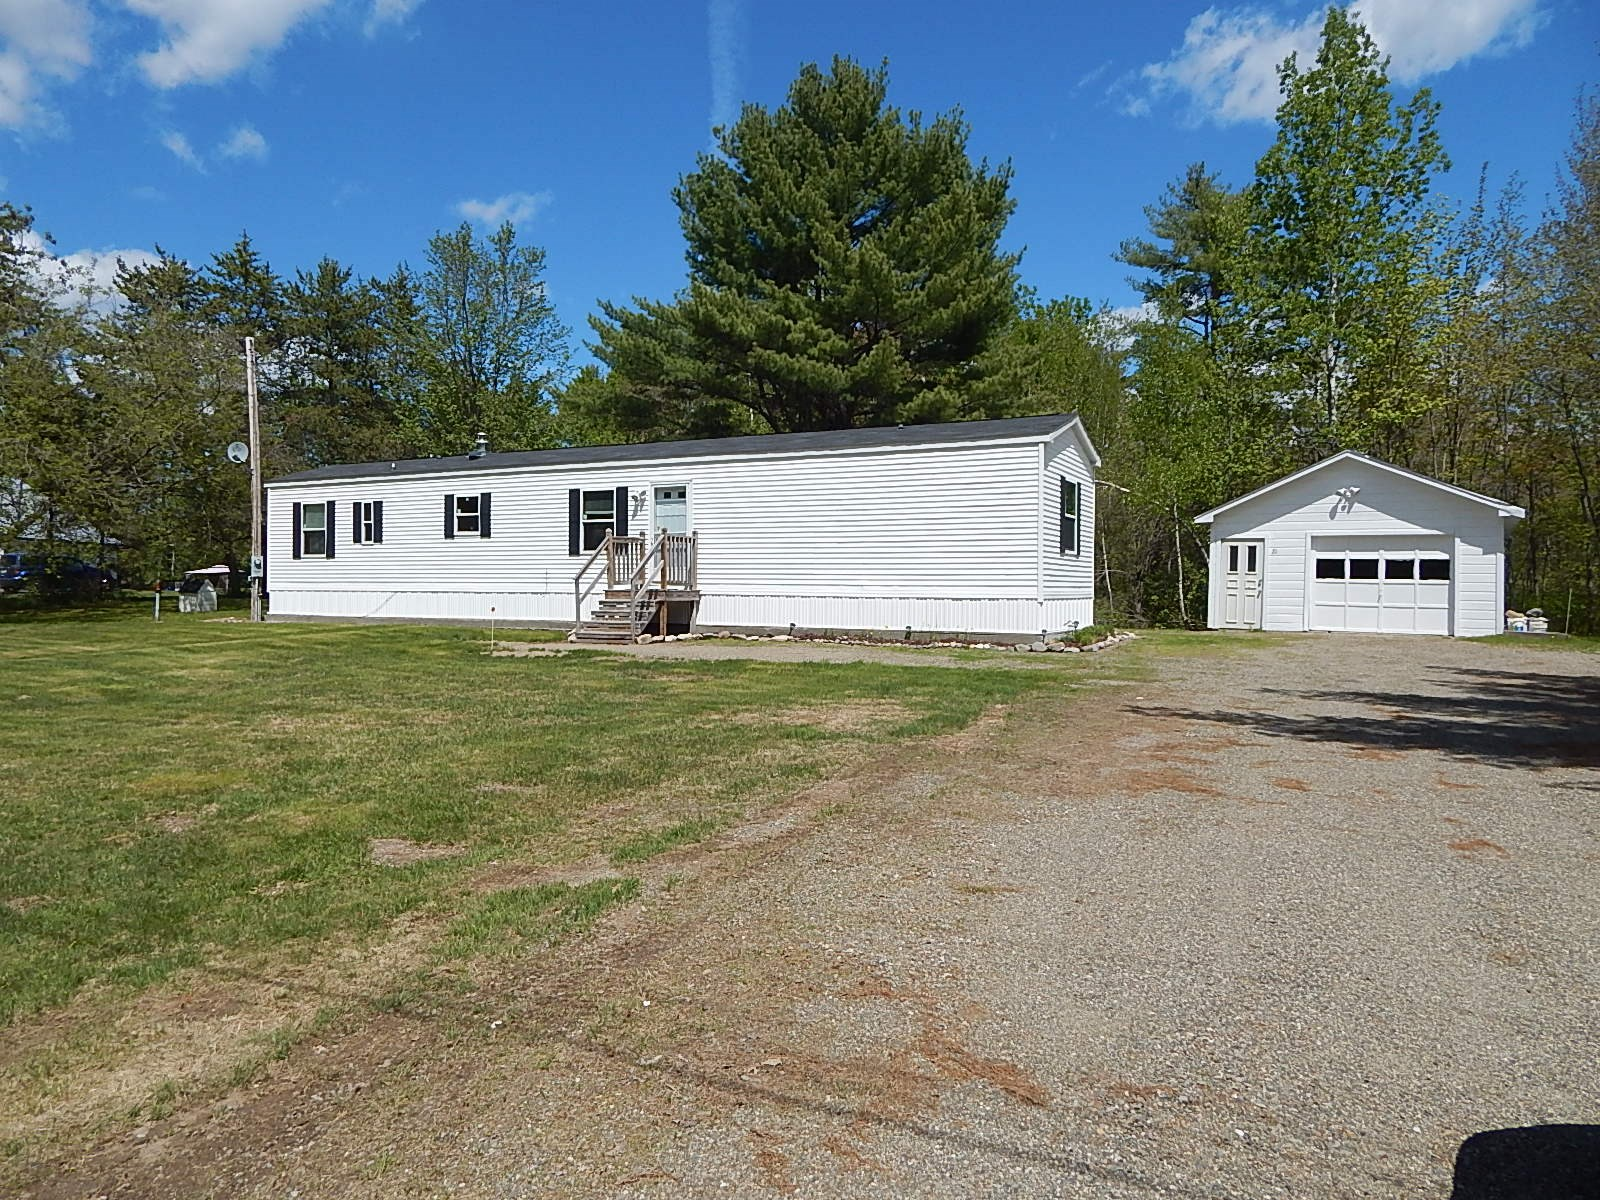 Sold - Country Mobile Home For Sale | Enfield, Maine